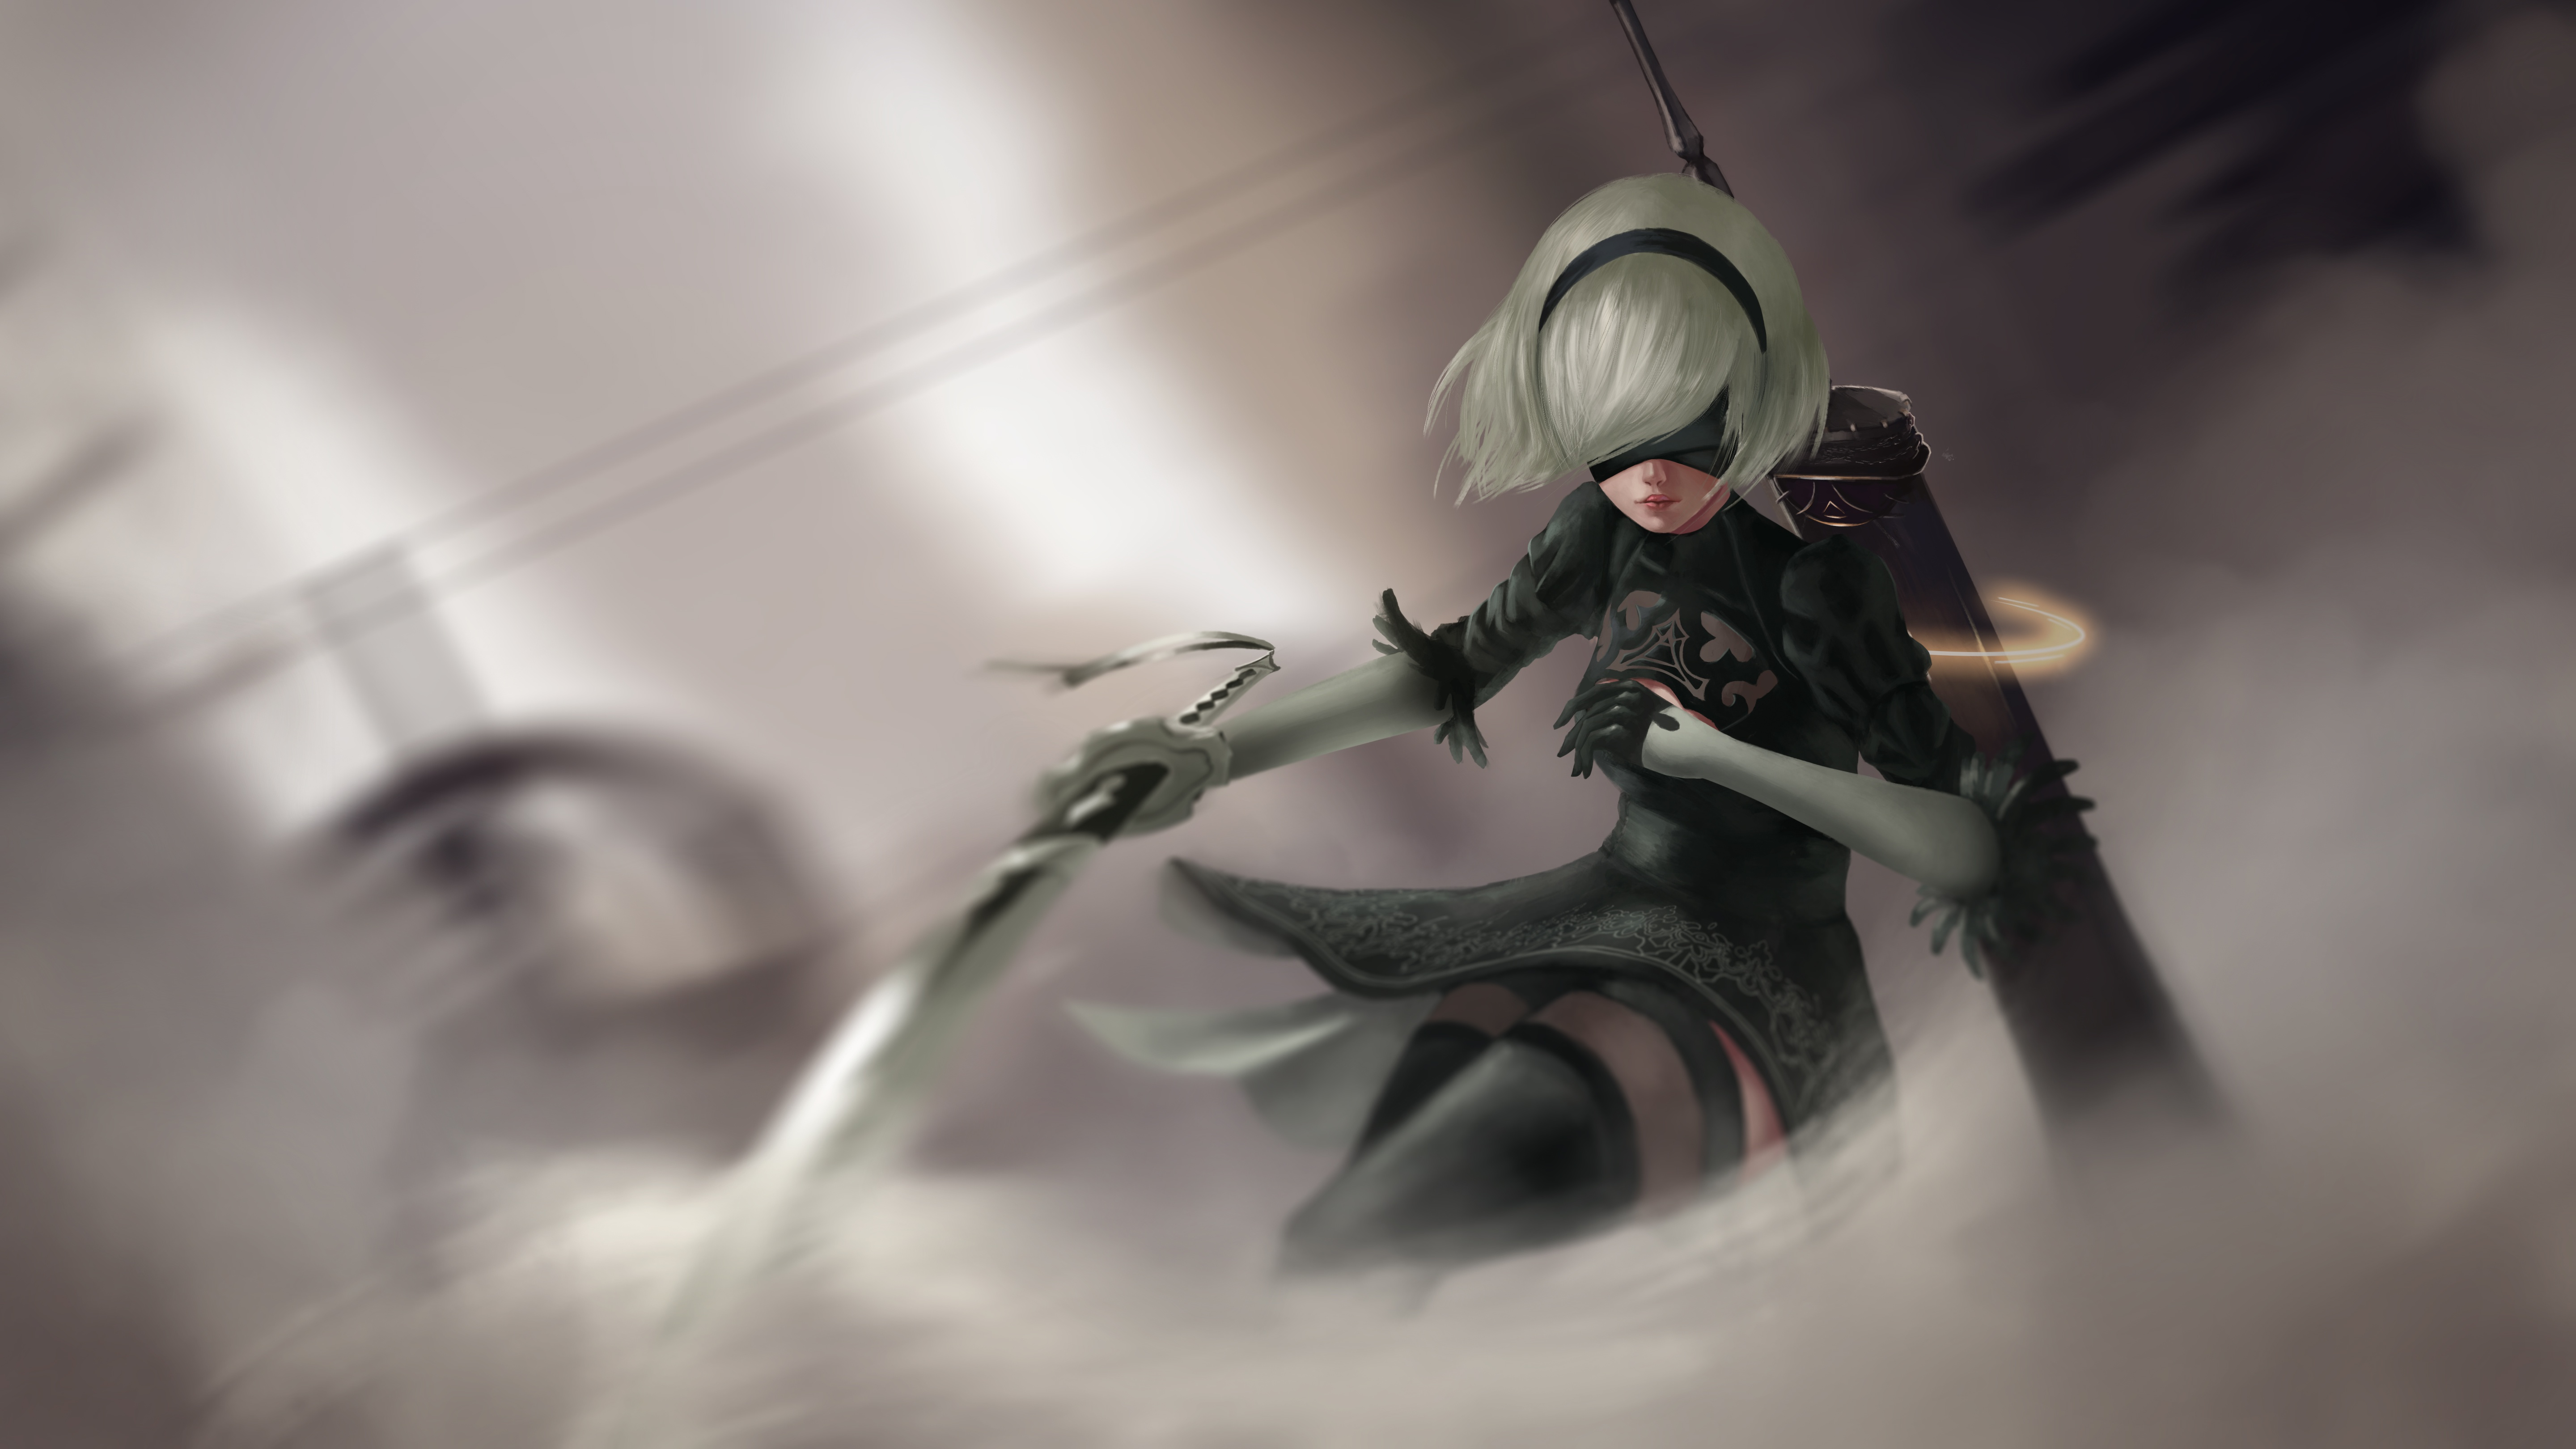 157 Yorha No 2 Type B Hd Wallpapers Background Images